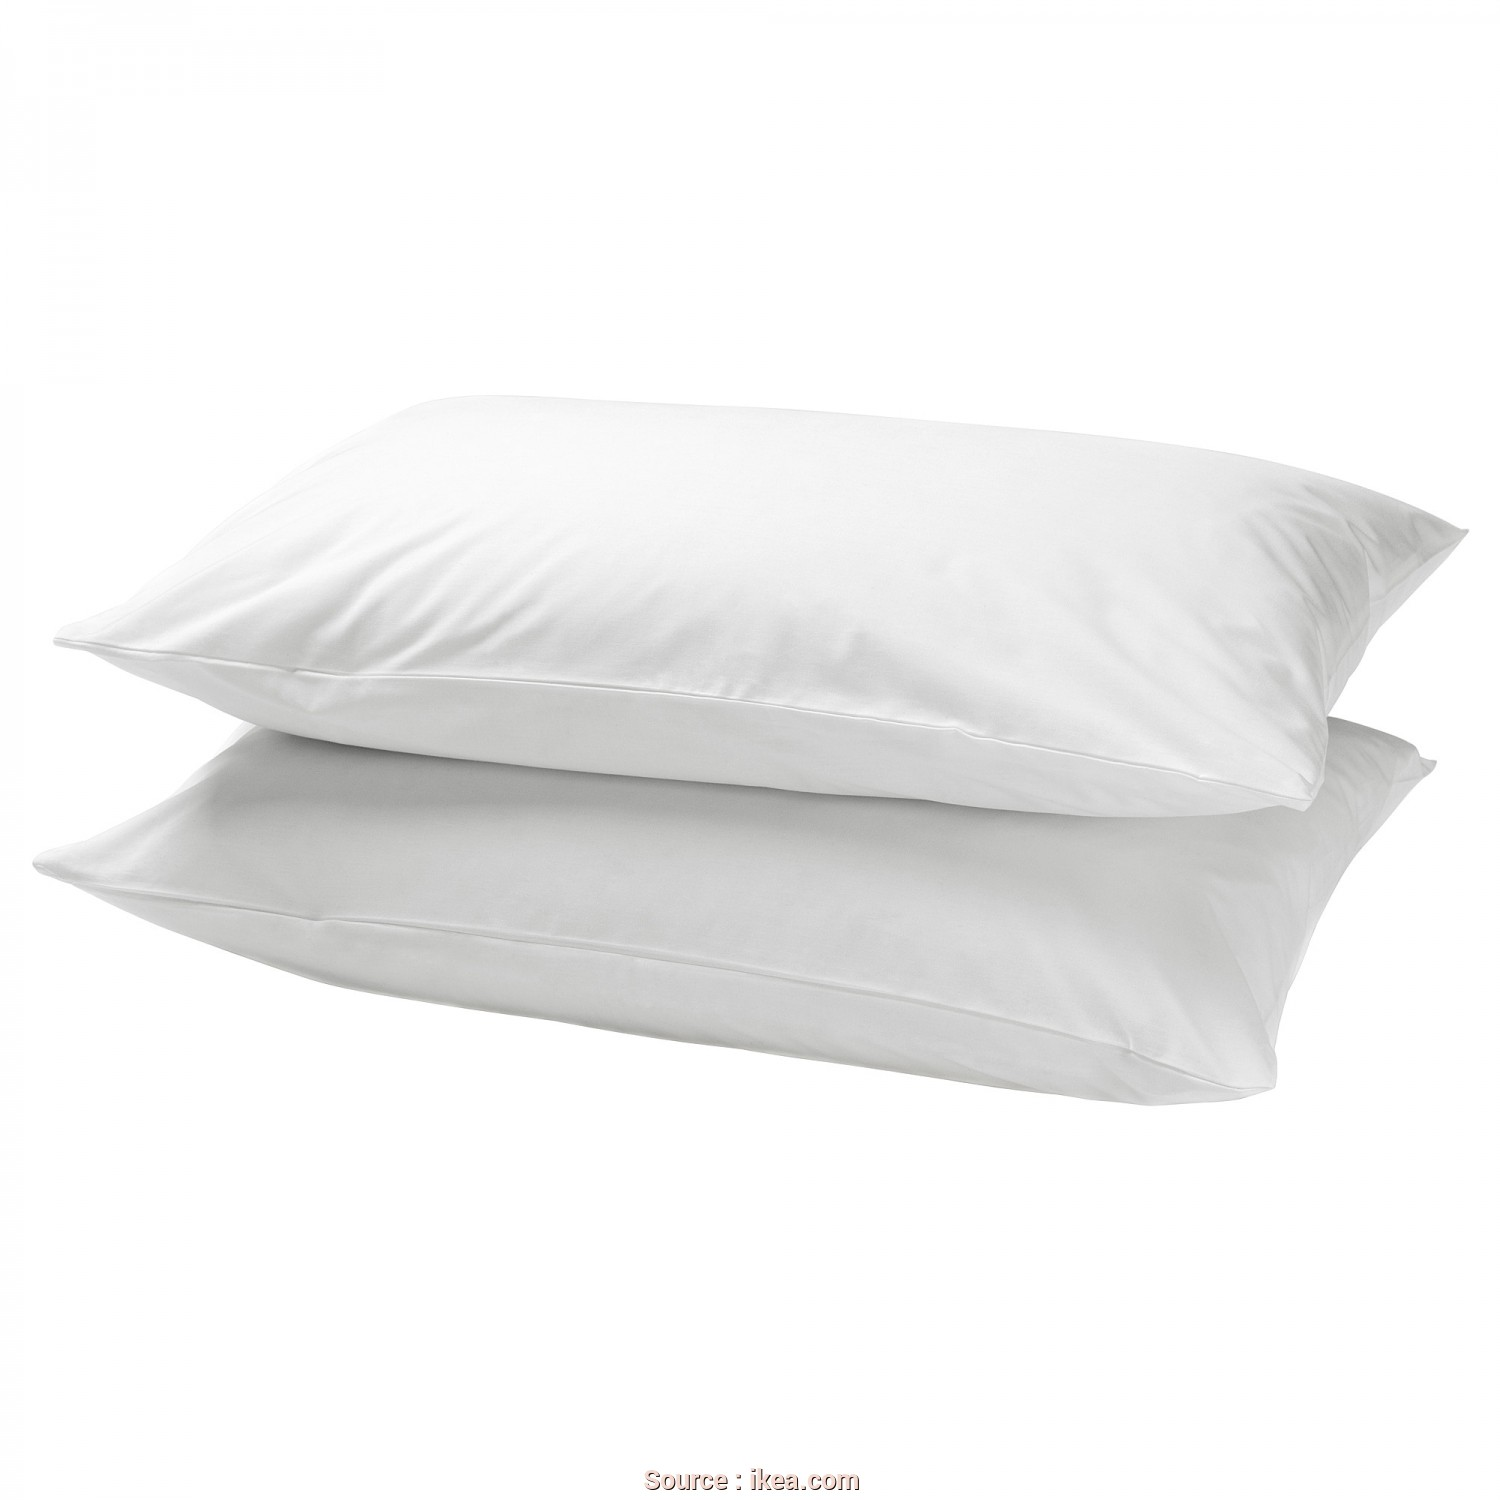 Ikea Cuscino Rolleka, Elegante IKEA DVALA Pillowcase Pure Cotton That Feels Soft, Nice Against Your Skin